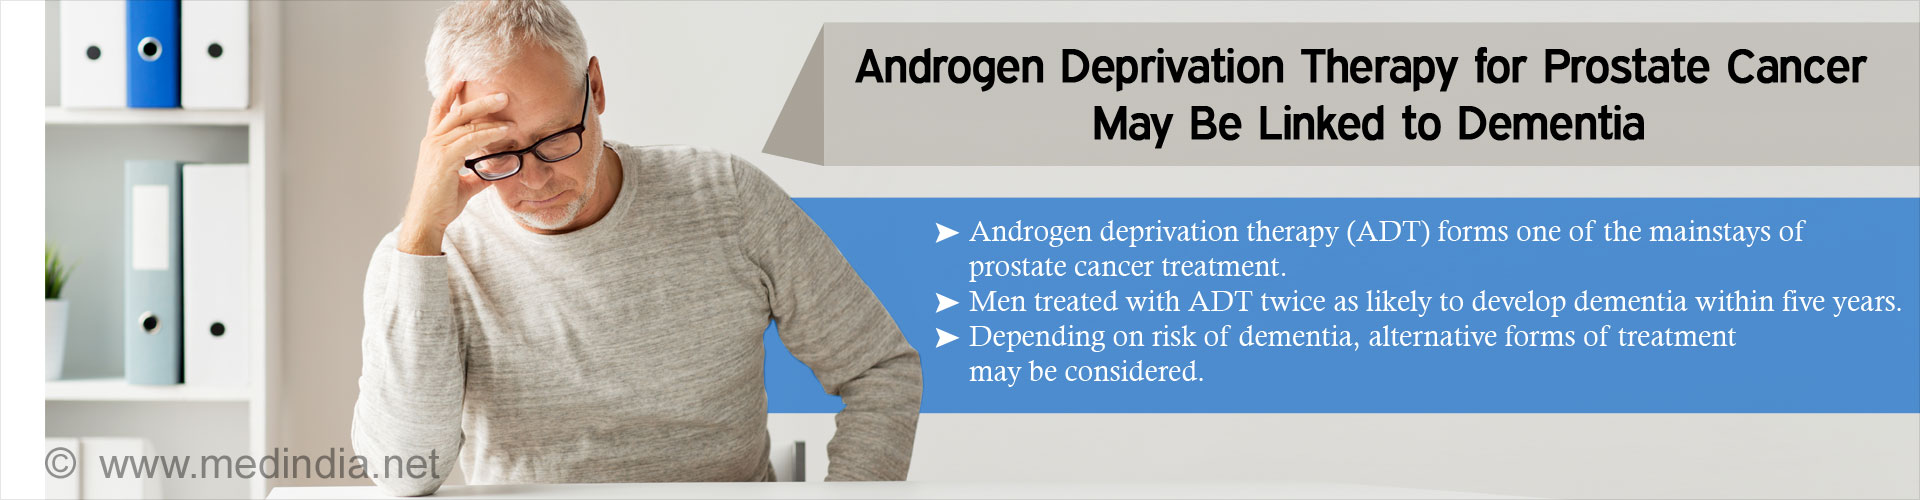 Androgen Deprivation Therapy for Prostate Cancer and Risk of Dementia � A Retrospective Study